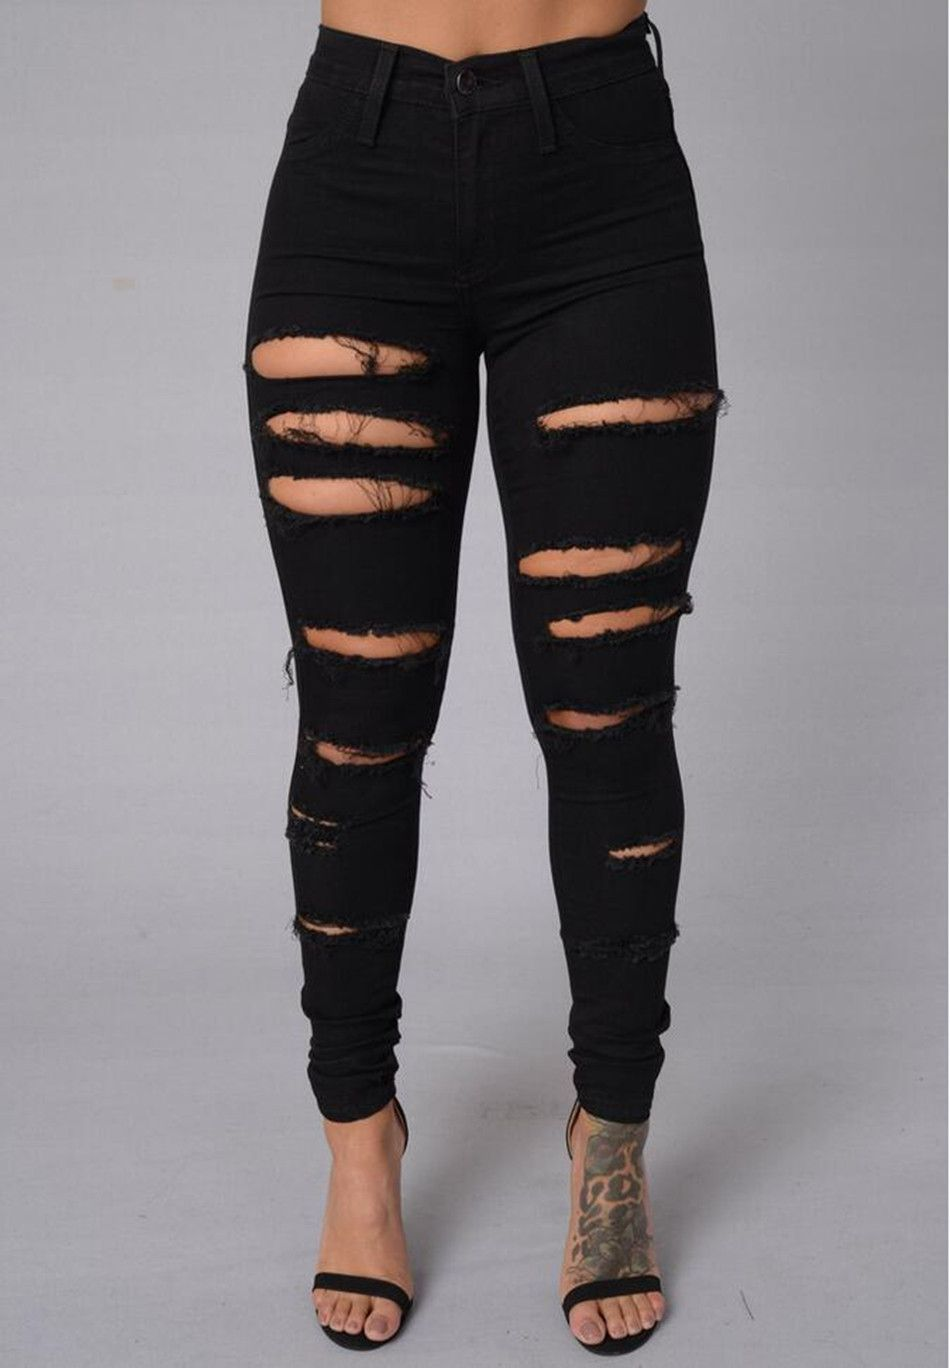 677c9227d4 Item Type: Jeans Gender: Women Fit Type: Skinny Decoration: Pockets,Hole,Fake  Zippers,Bleached,Washed,Vintage Jeans Style: Pencil Pants Waist Type: High  ...